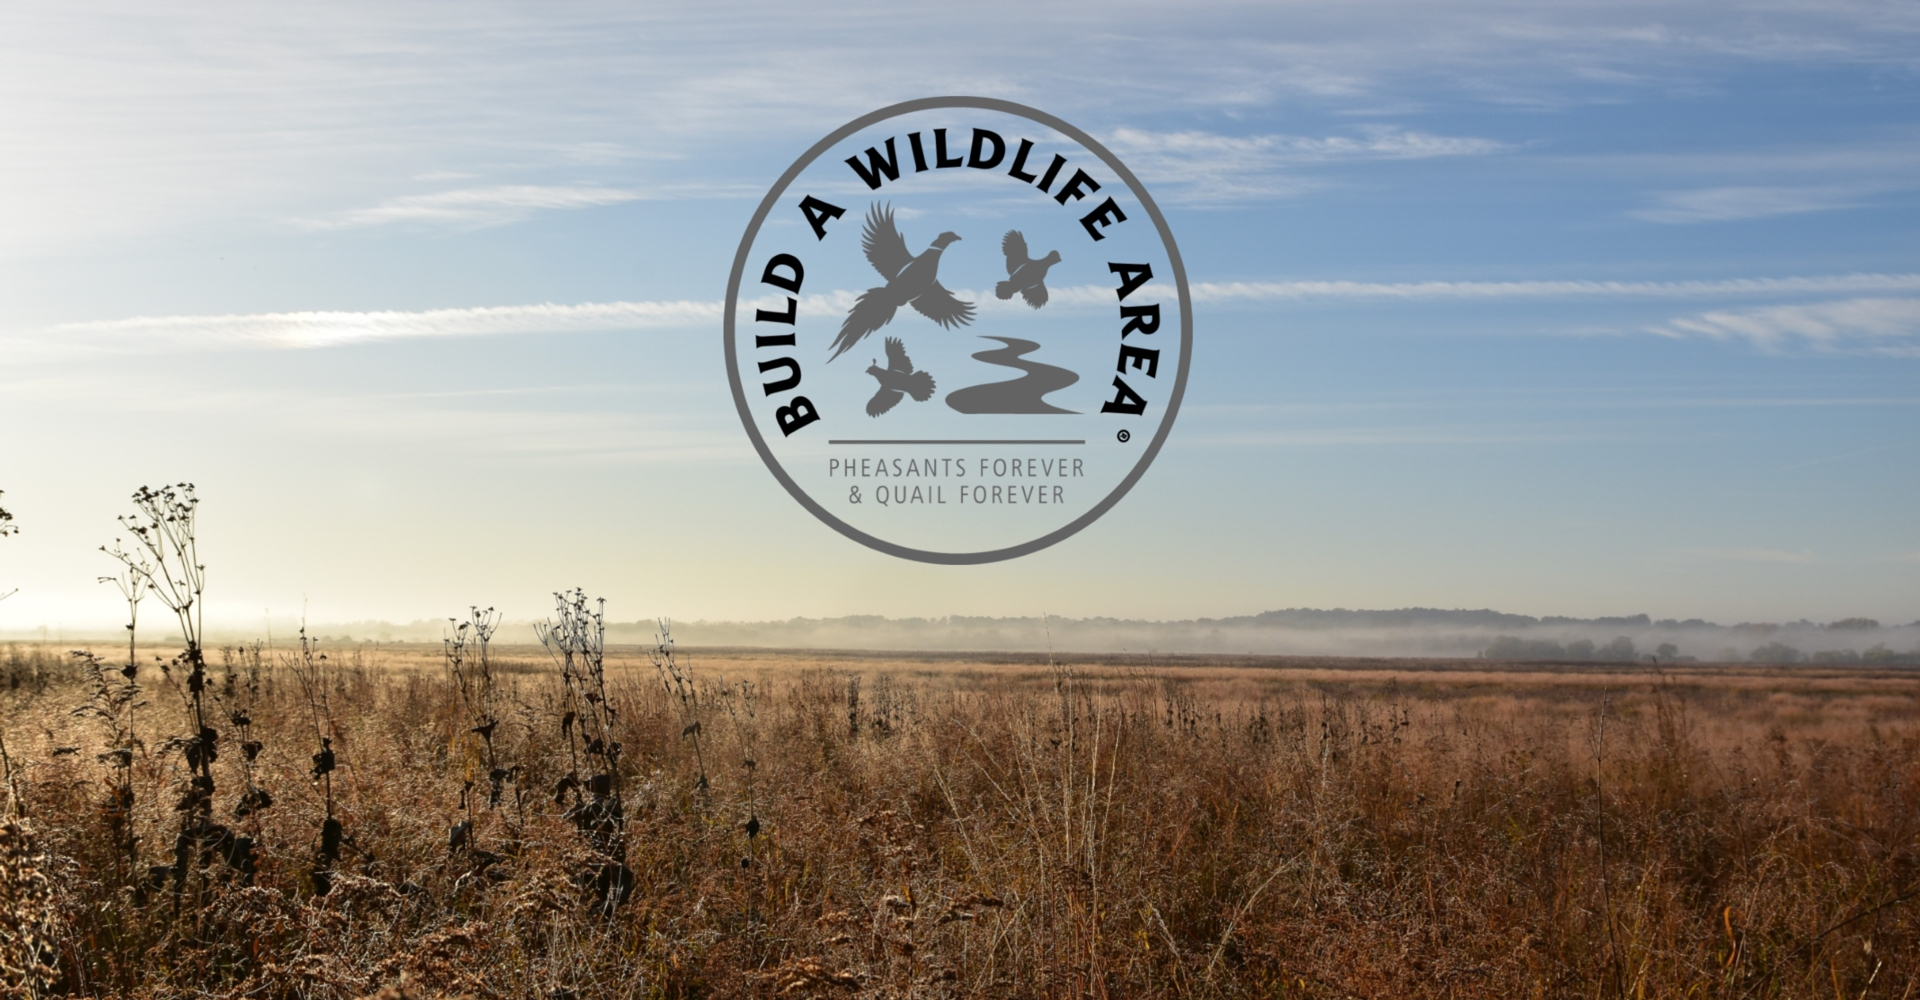 Build A Wildlife Area (BAWA)